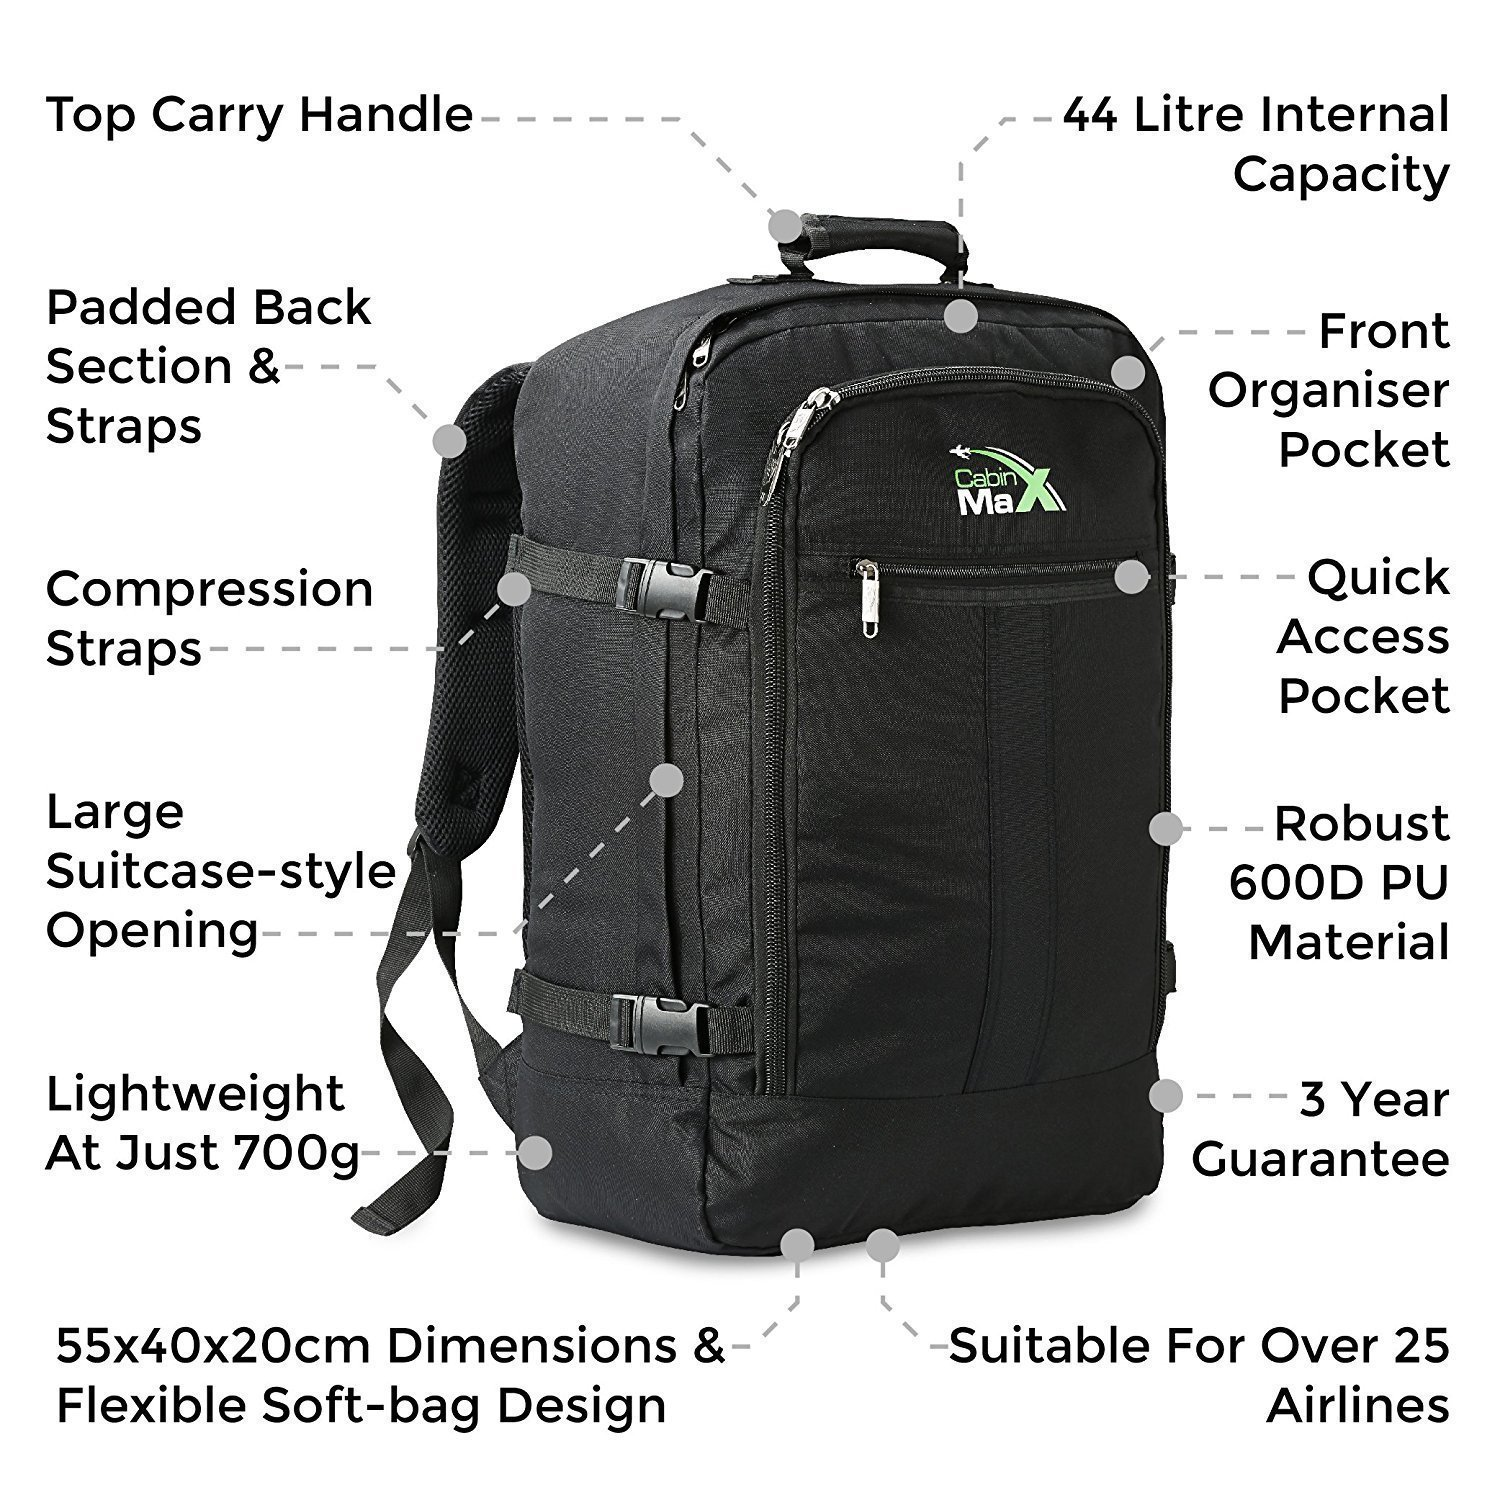 296d6f67d6 ... Cabin Max Metz Backpack Flight Approved Carry on Bag 44 Litre Travel  Hand Luggag